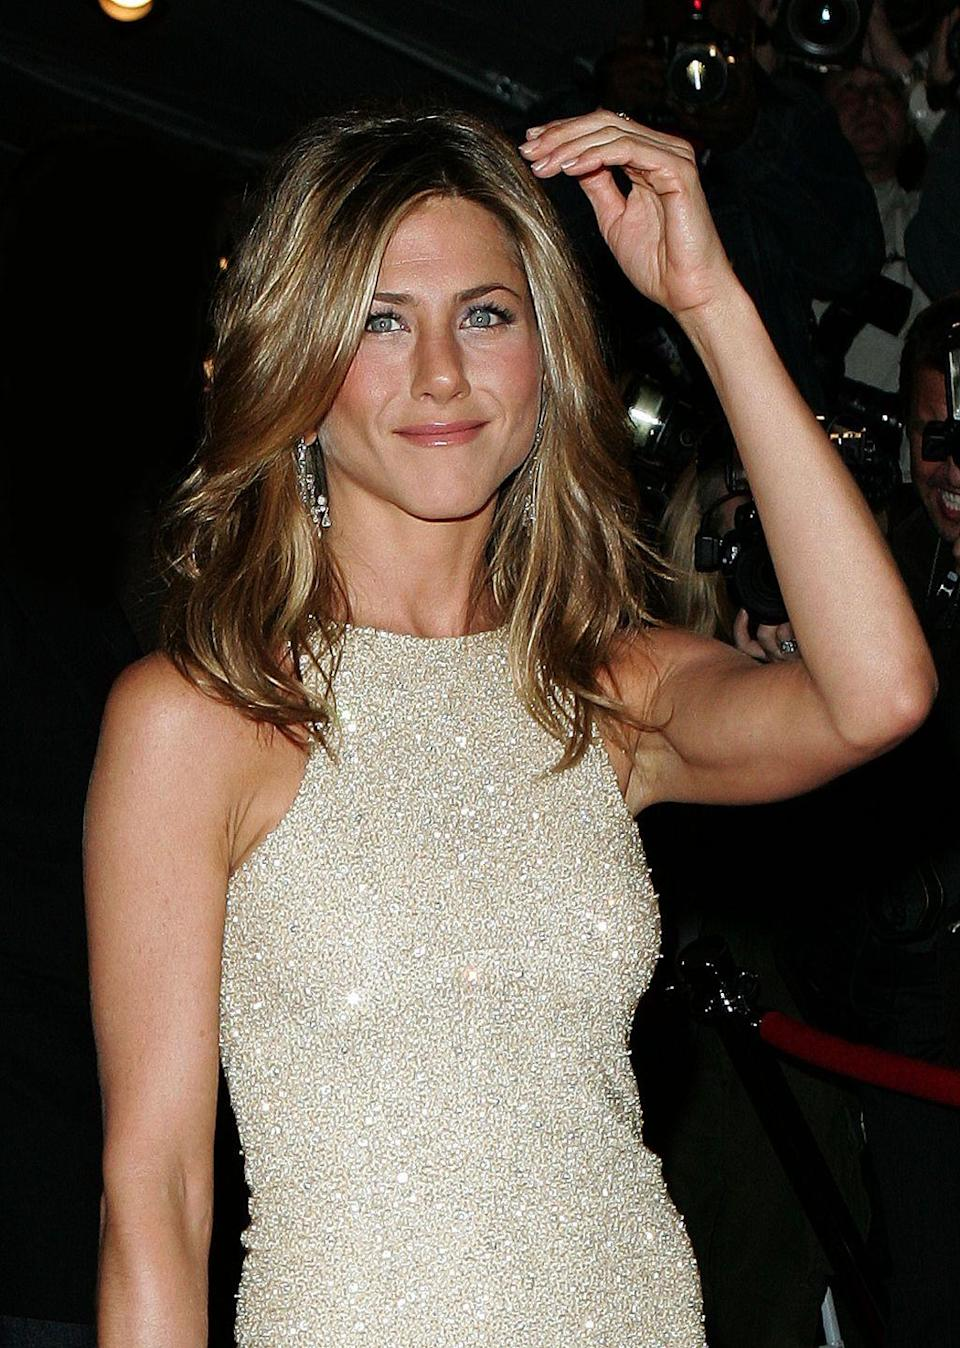 """<p>Aniston addresses the split in an interview with <em><a href=""""https://www.vanityfair.com/news/2005/09/aniston200509"""" rel=""""nofollow noopener"""" target=""""_blank"""" data-ylk=""""slk:Vanity Fair"""" class=""""link rapid-noclick-resp"""">Vanity Fair</a>, </em>and famously describes Pitt as """"missing a sensitivity chip"""" thanks to a <em>W</em> magazine spread featuring him and Jolie. </p><p>""""Brad is not mean-spirited; he would never intentionally try to rub something in my face,"""" she says. """"In hindsight, I can see him going, 'Oh—I can see that that was inconsiderate.' But I know Brad. Brad would say, 'That's art!' There's a sensitivity chip that's missing.""""</p>"""